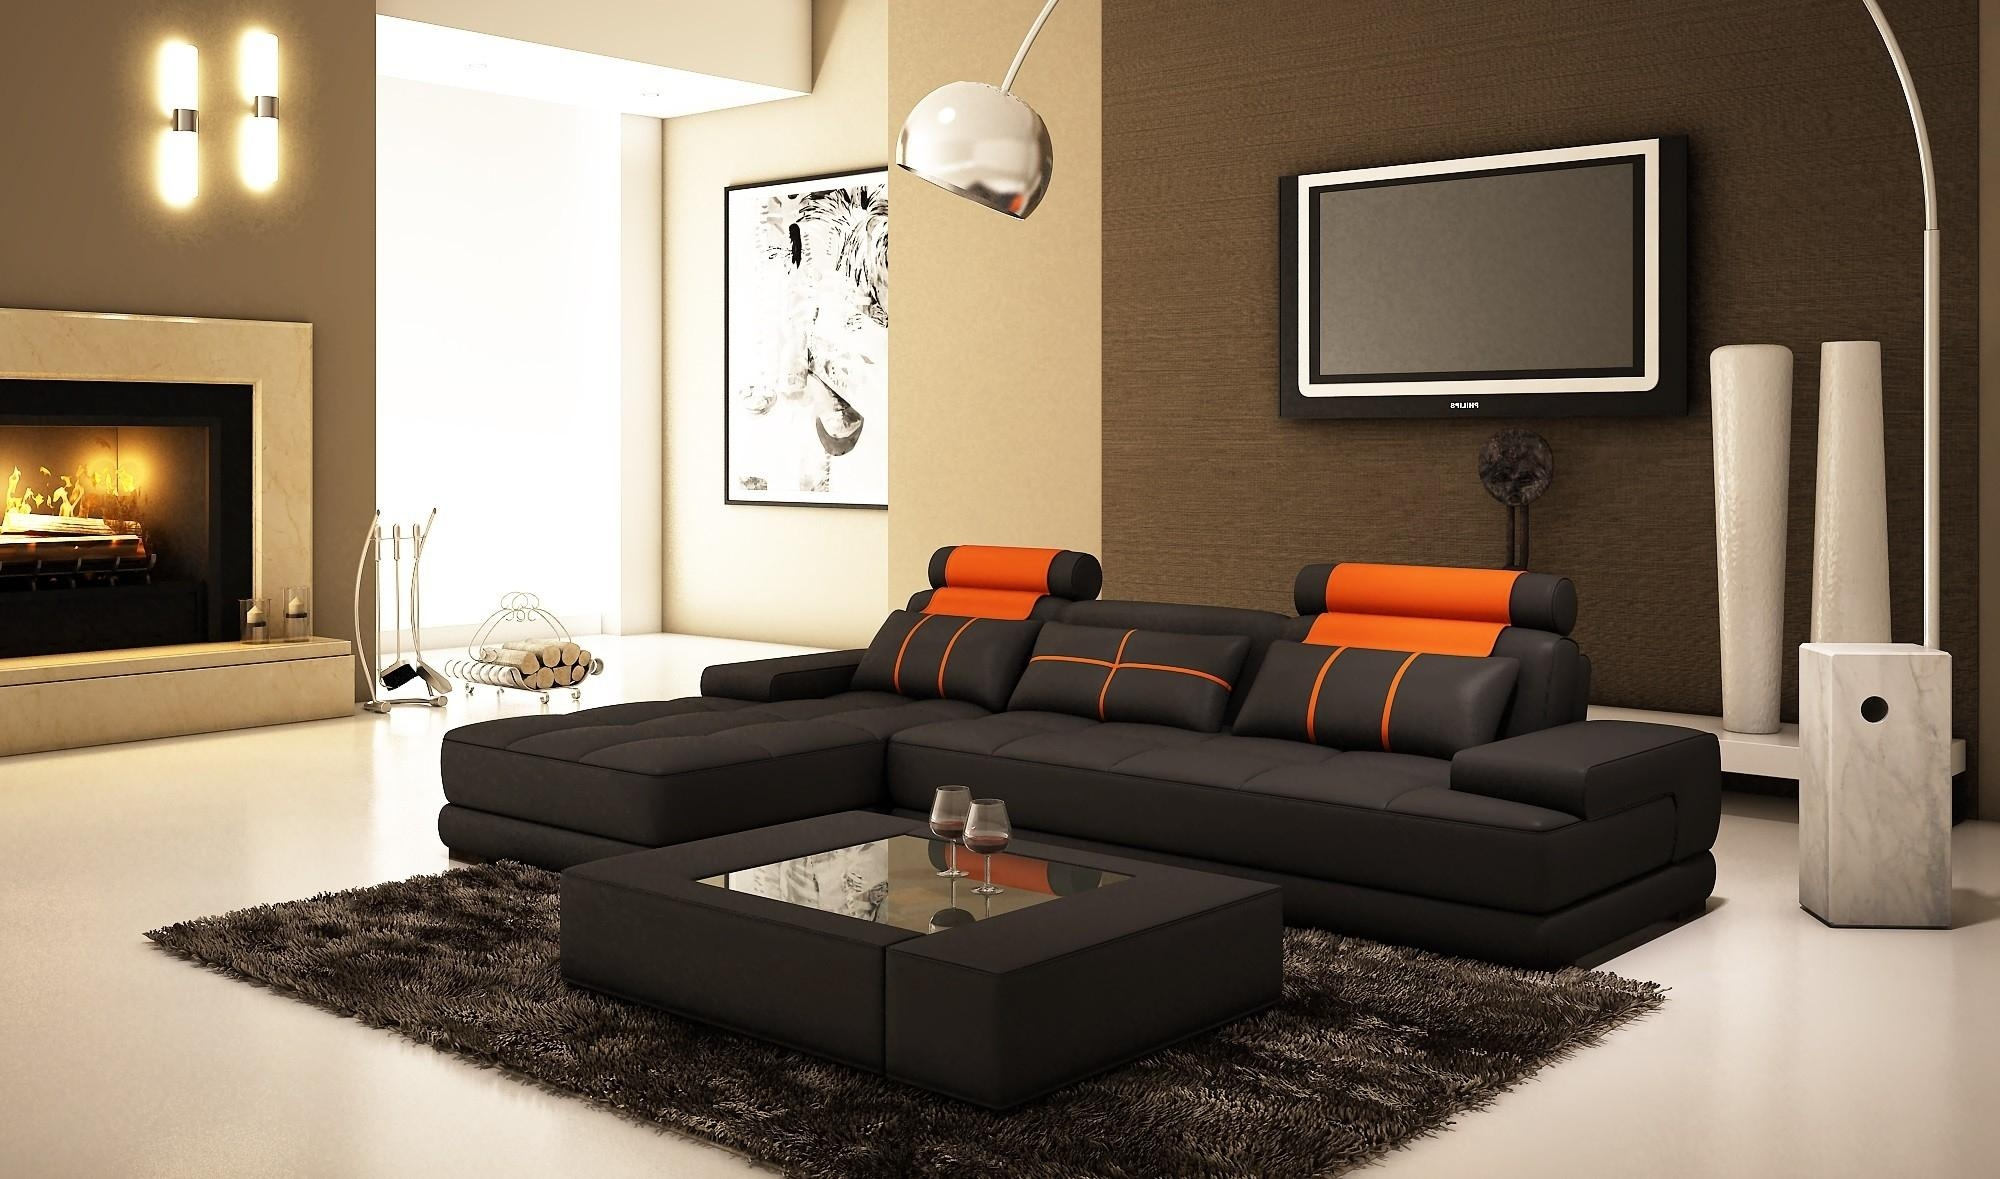 asian sofas emilia sofa macys 20 best collection of ideas